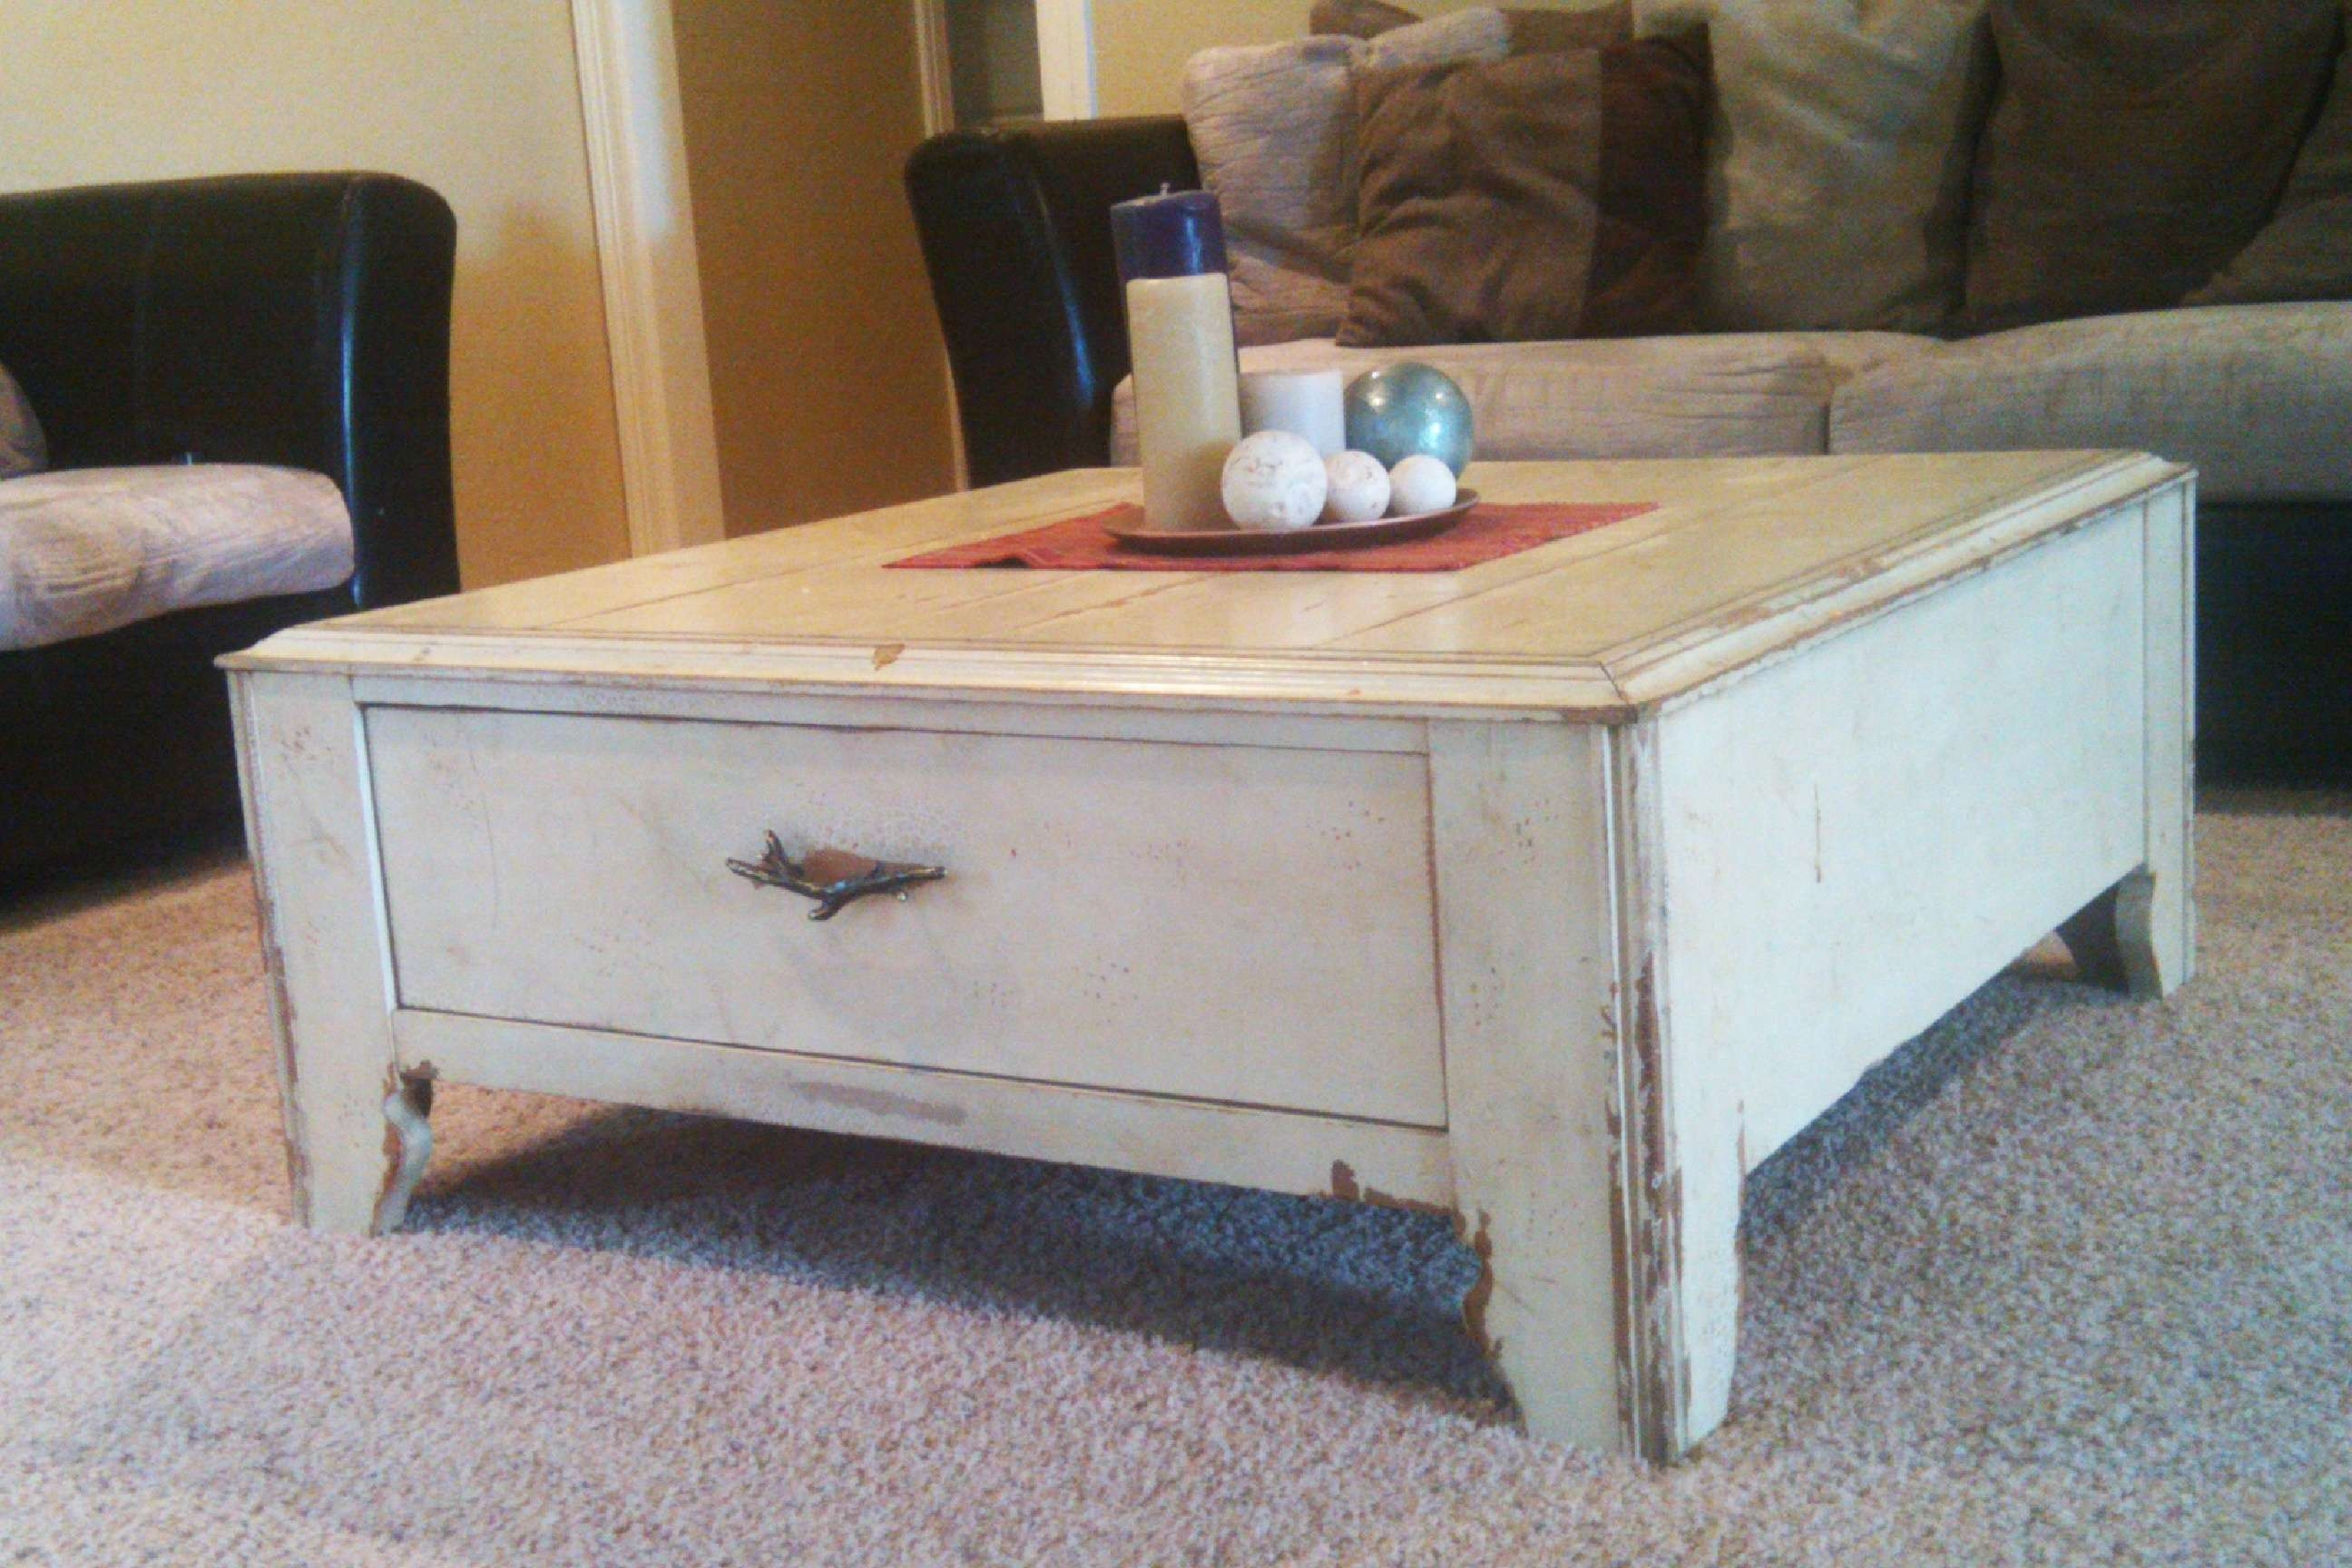 Most Recent Low Coffee Tables With Drawers Intended For Coffee Tables : Small Square Coffee Table With Drawers Black (View 5 of 20)